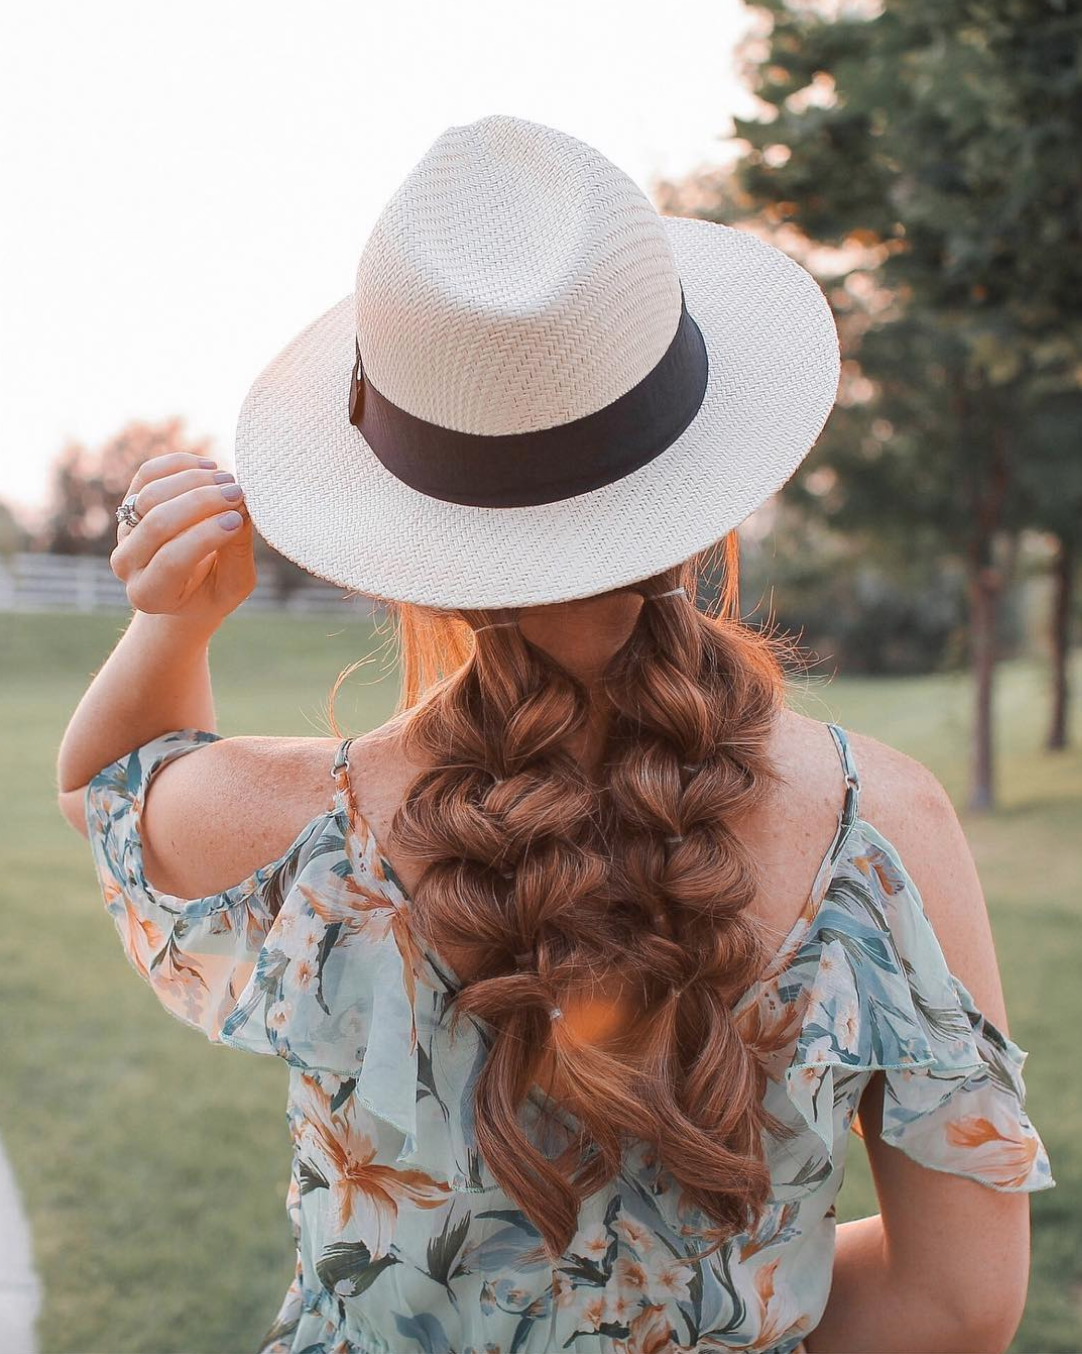 Pulled Through Pigtail braids with hat - This look is perfection for fall! Tie two basic pigtails, braid both sides and pull the hair out for volume, and finish the look with a felt or straw hat.